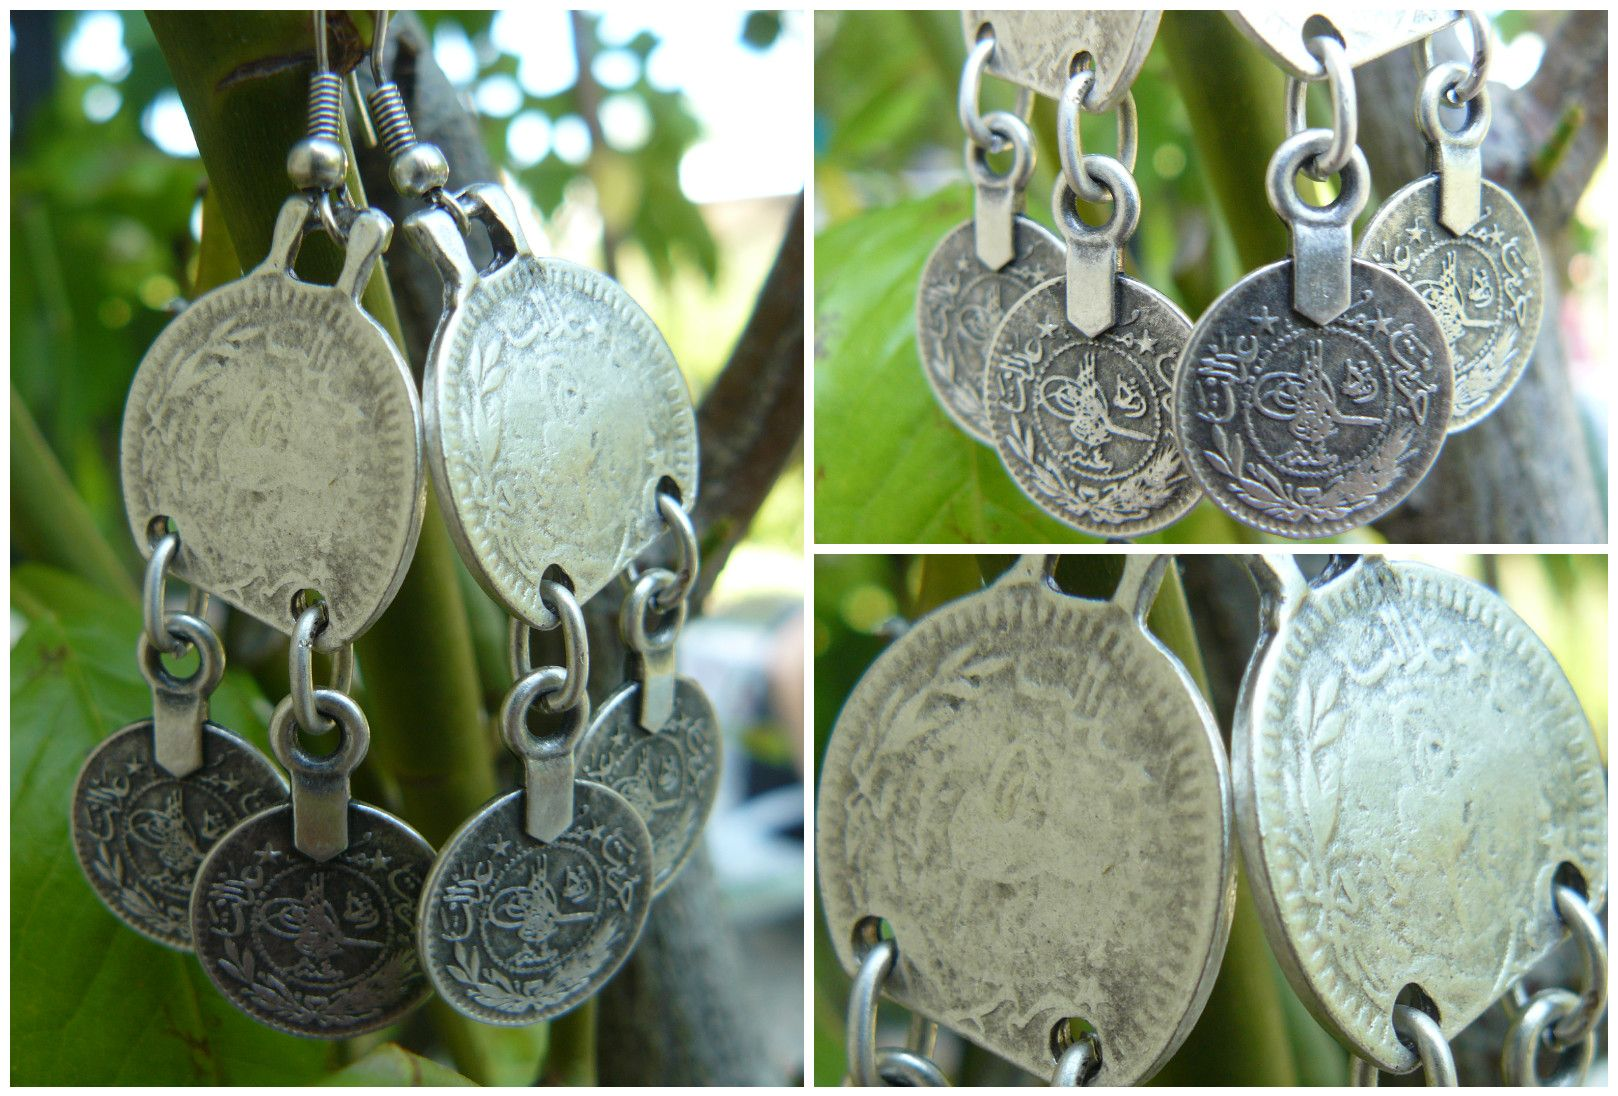 Silver coated earrings with reproduction of ancient ottoman coins, Turkey